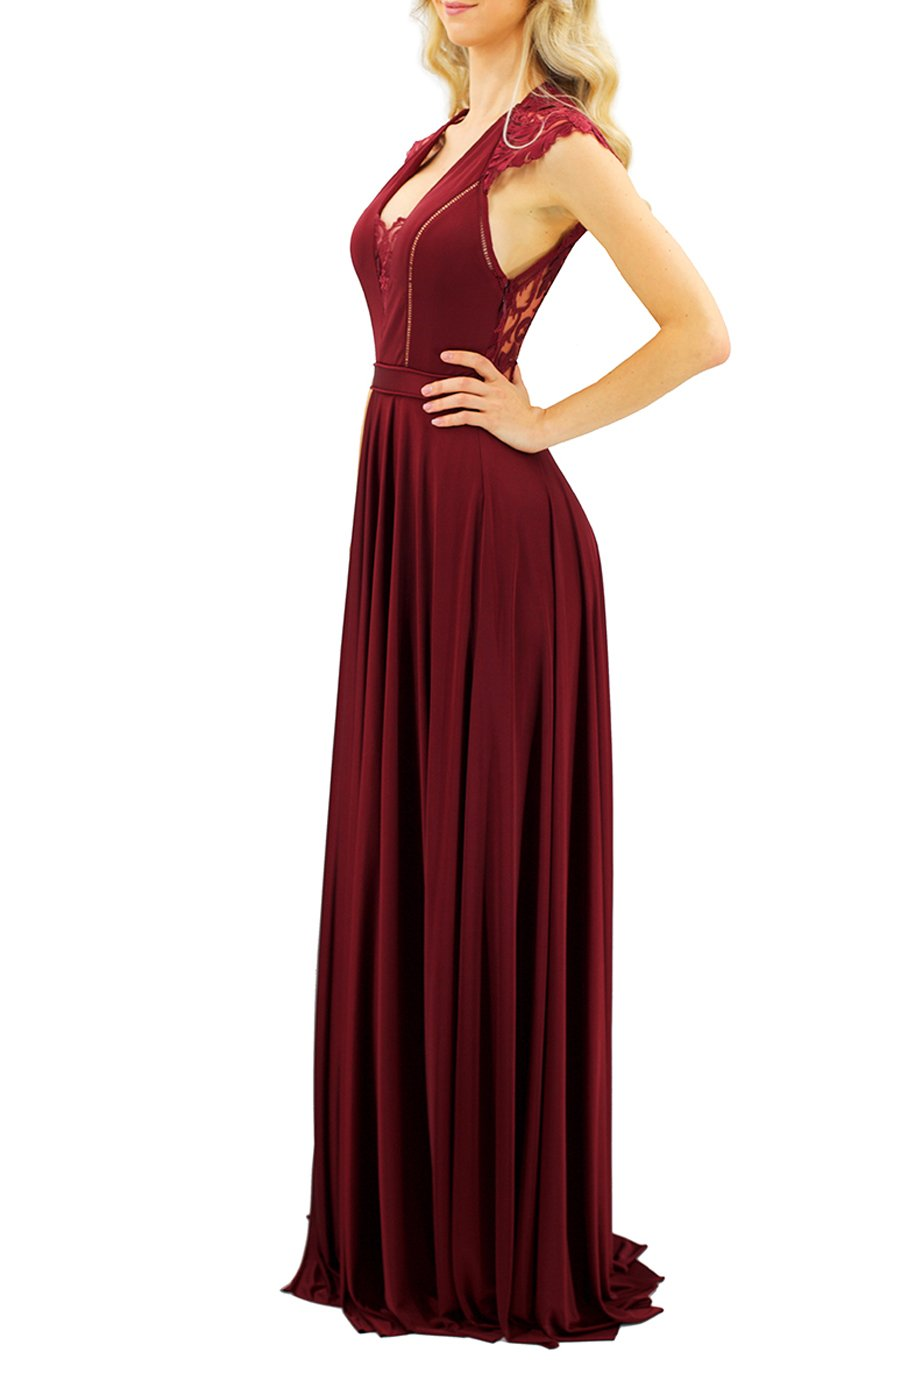 Catherine Deane Burgundy Lace-Paneled Satin Gown